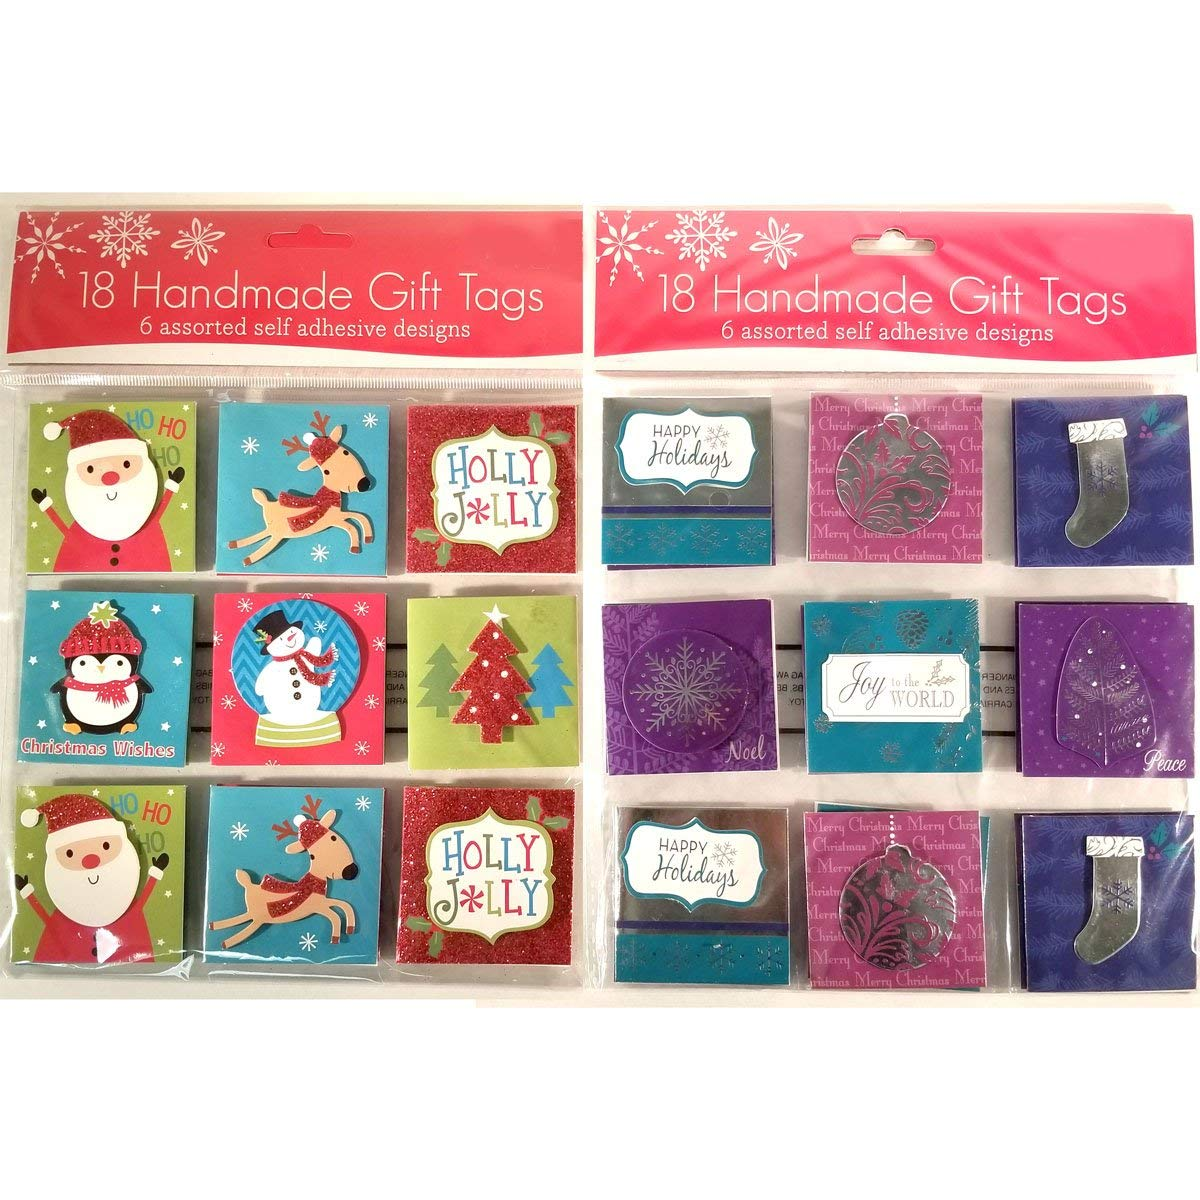 36 Handmade Gift Tags (Christmas 03: Red, Green, Teal & Purple)